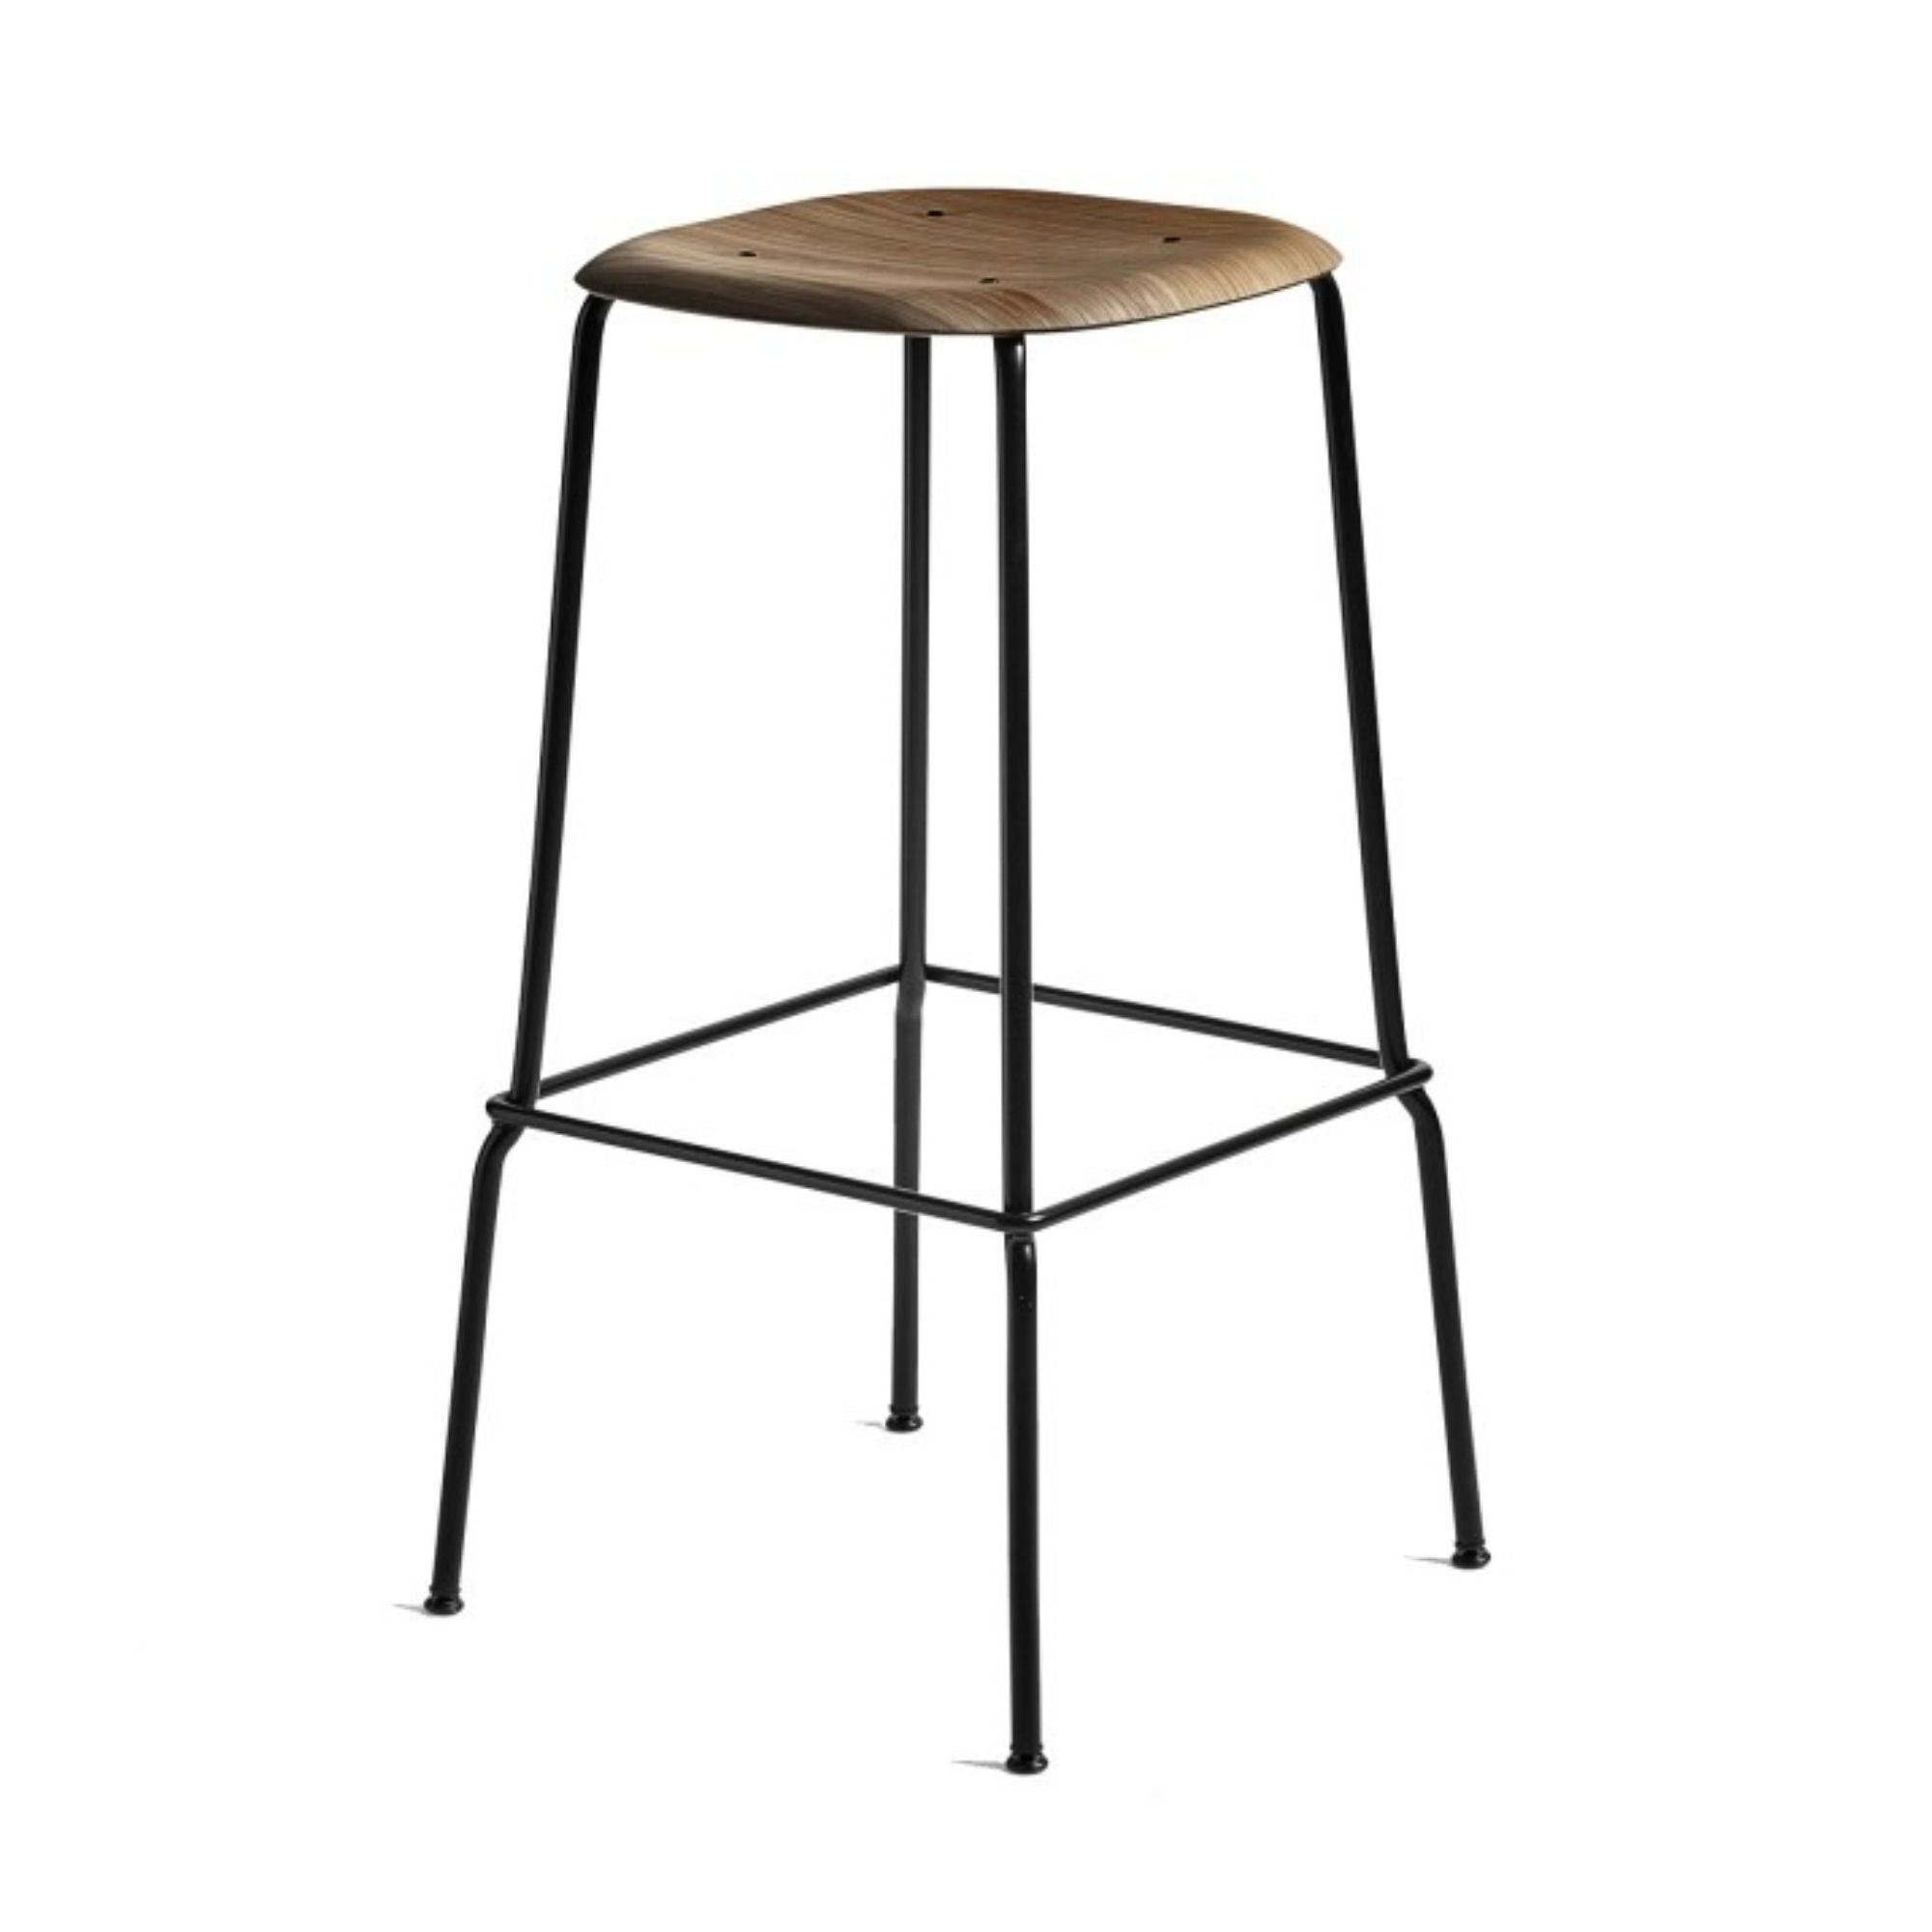 HAY Soft Edge30 Bar Stool 75cm , Smoked Oiled Oak/Black